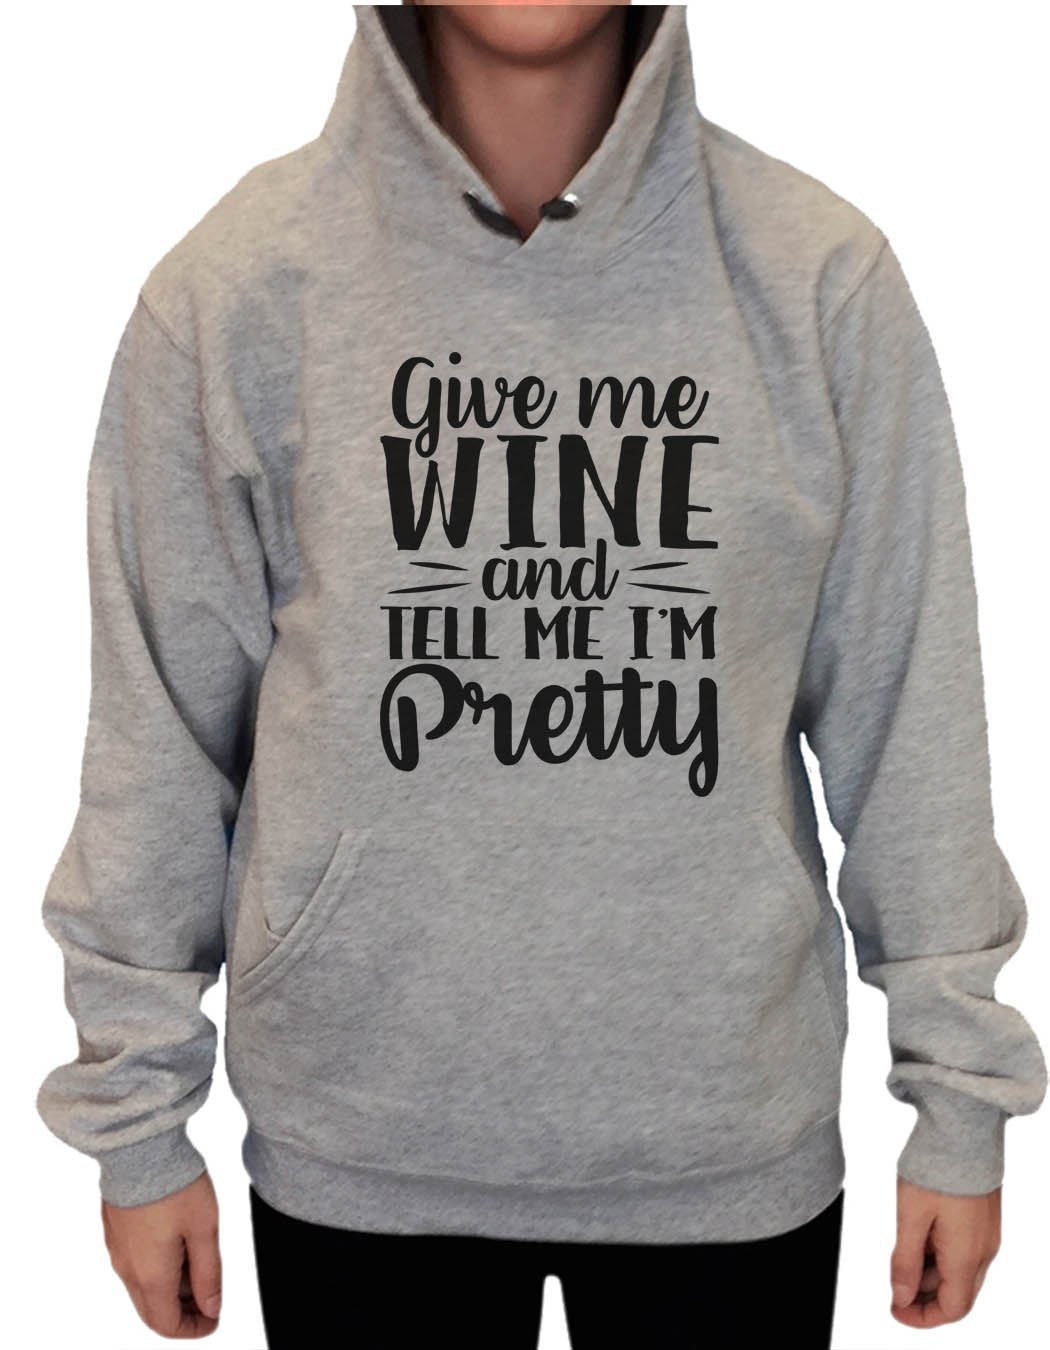 UNISEX HOODIE - Give Me Wine And Tell Me I'm Pretty - FUNNY MENS AND WOMENS HOODED SWEATSHIRTS - 2138 Funny Shirt Small / Heather Grey